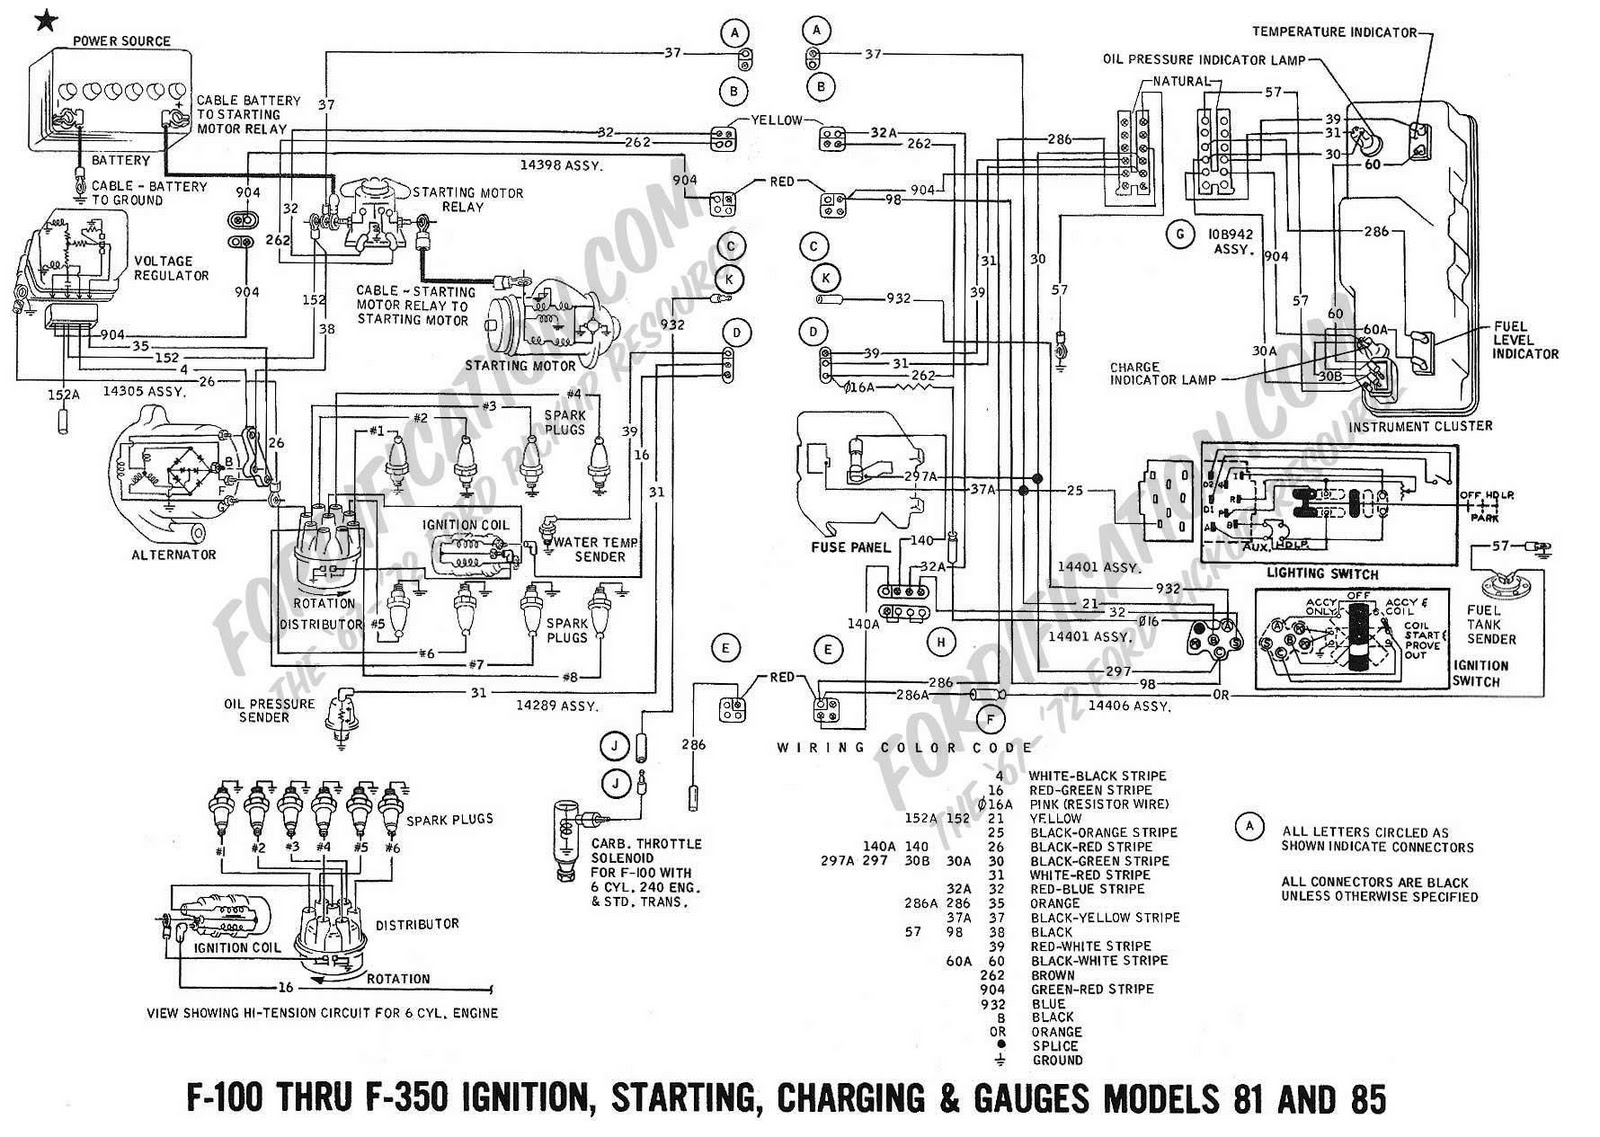 hight resolution of ford f1 wiring diagram wiring diagram third level 1946 chevy truck wiring diagram 1969 f100 wiring